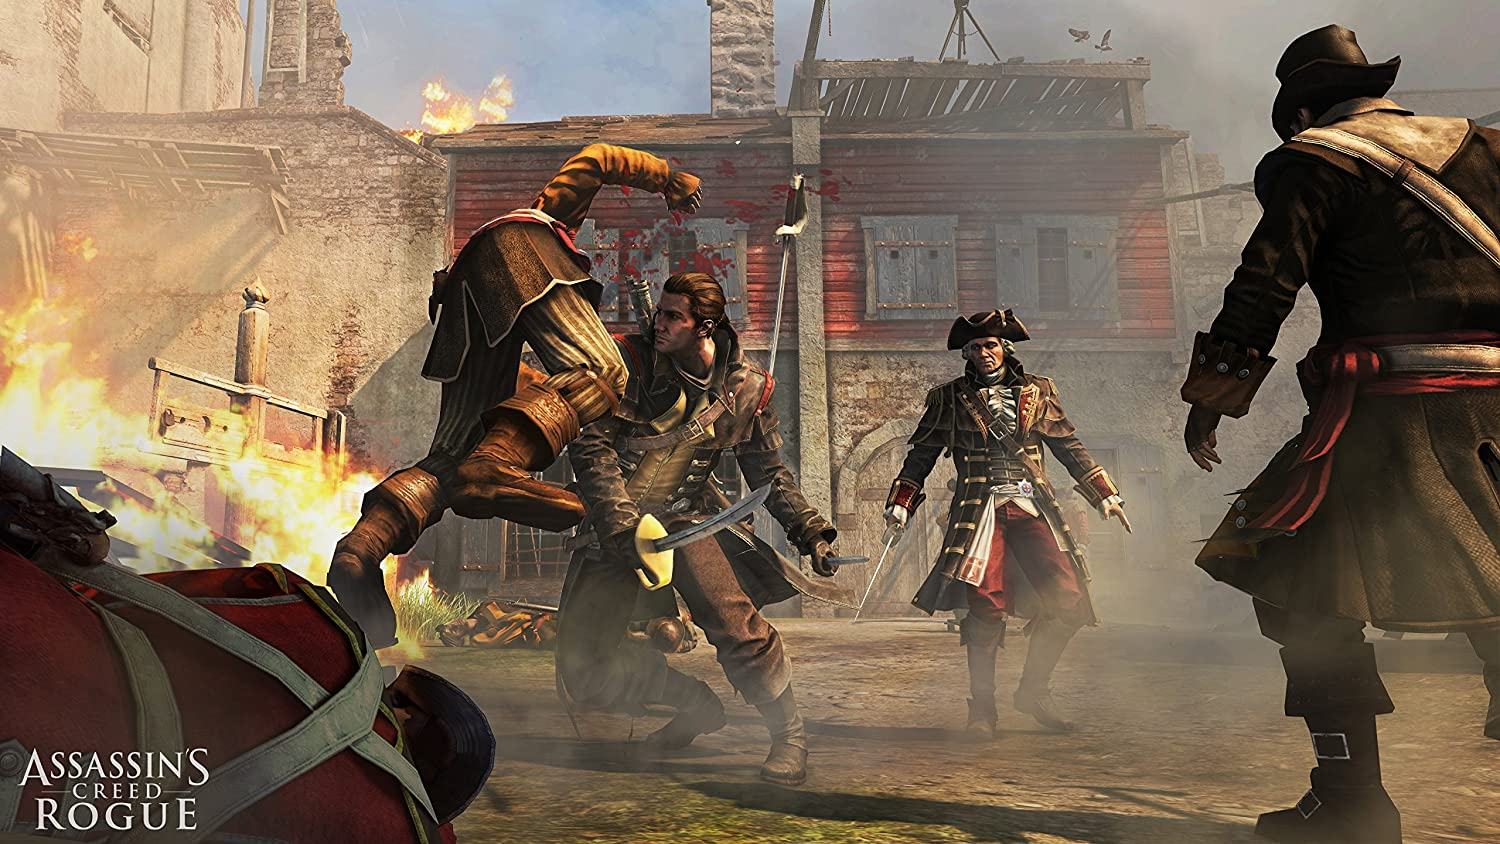 download assassin creed rogue pc 32 bit